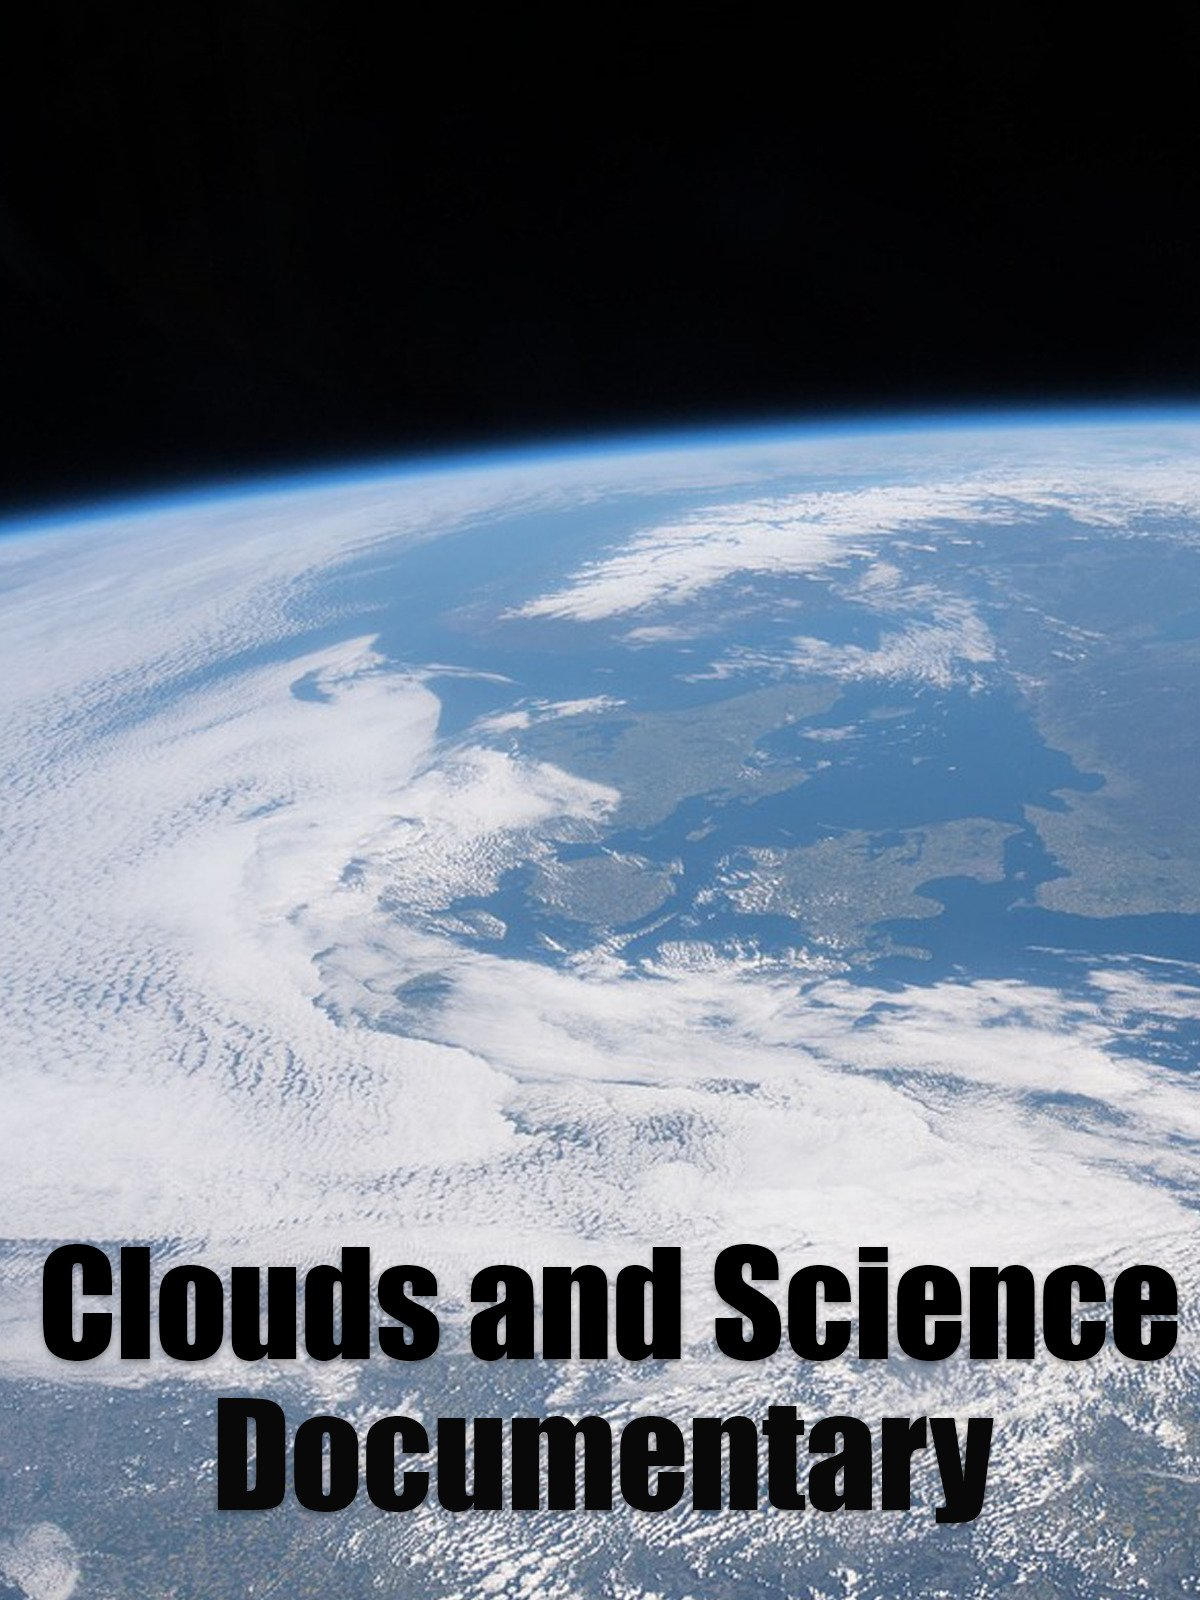 Clouds and science: Documentary